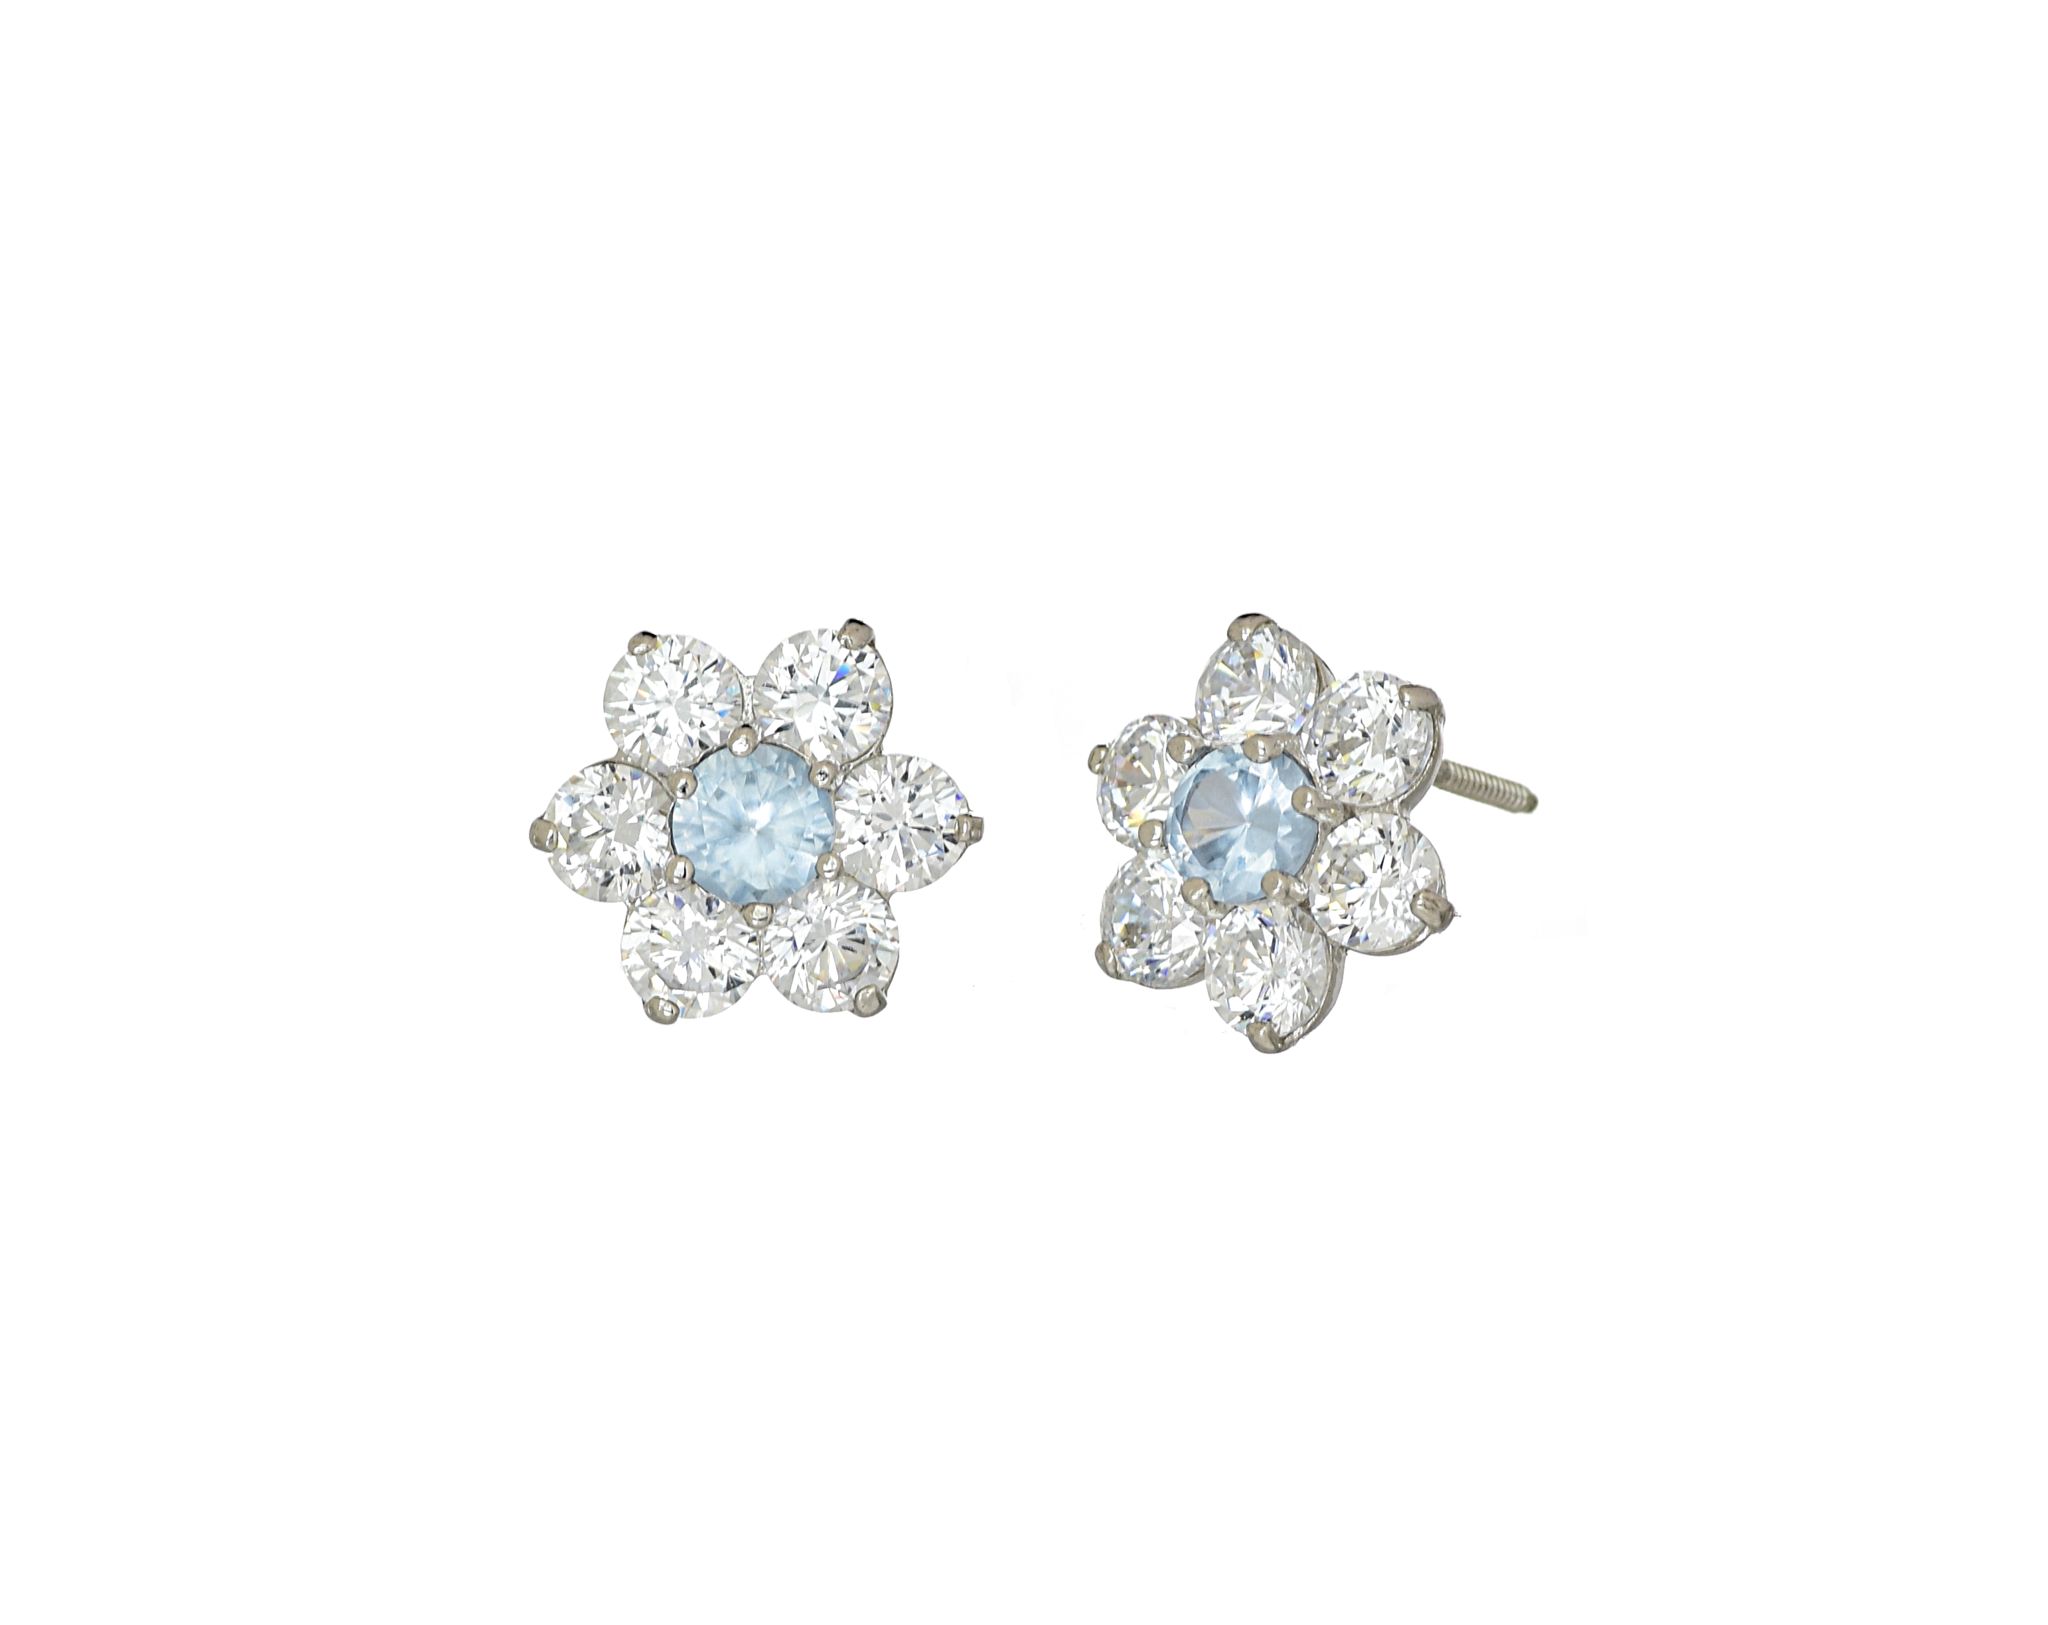 Buy 14k White Gold Flower Cz Stone March Birthstone Cluster Earrings